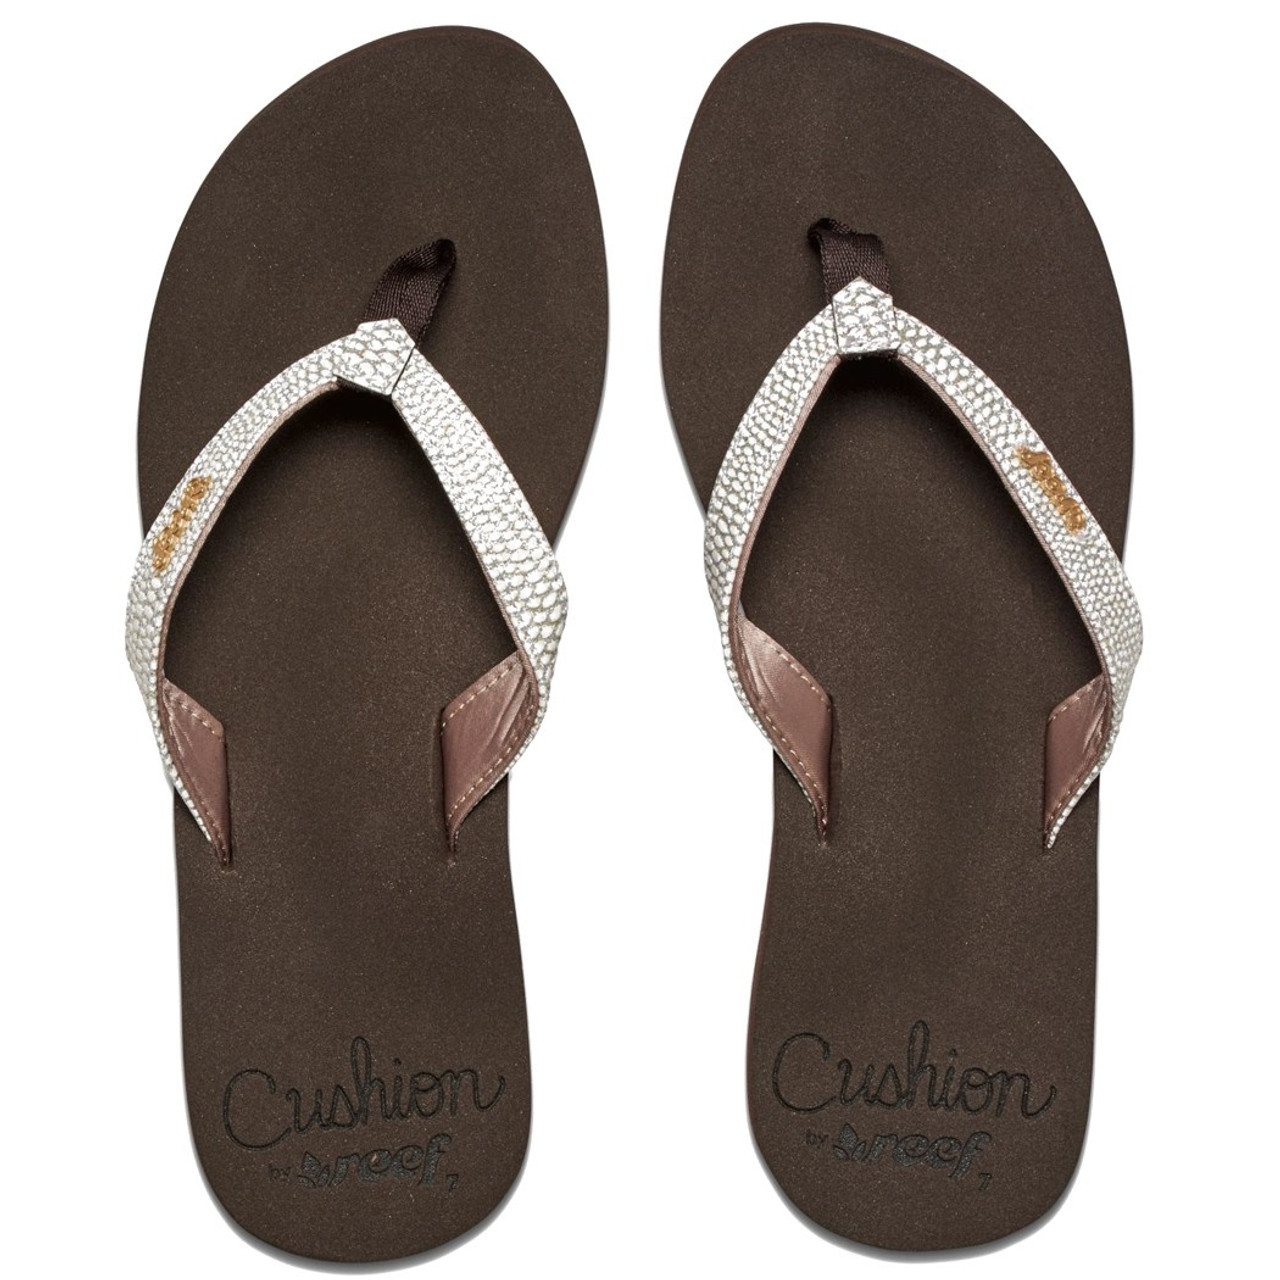 610b0a138 Reef Women s Flip Flop - Star Cushion Sassy - Brown White - Surf and ...